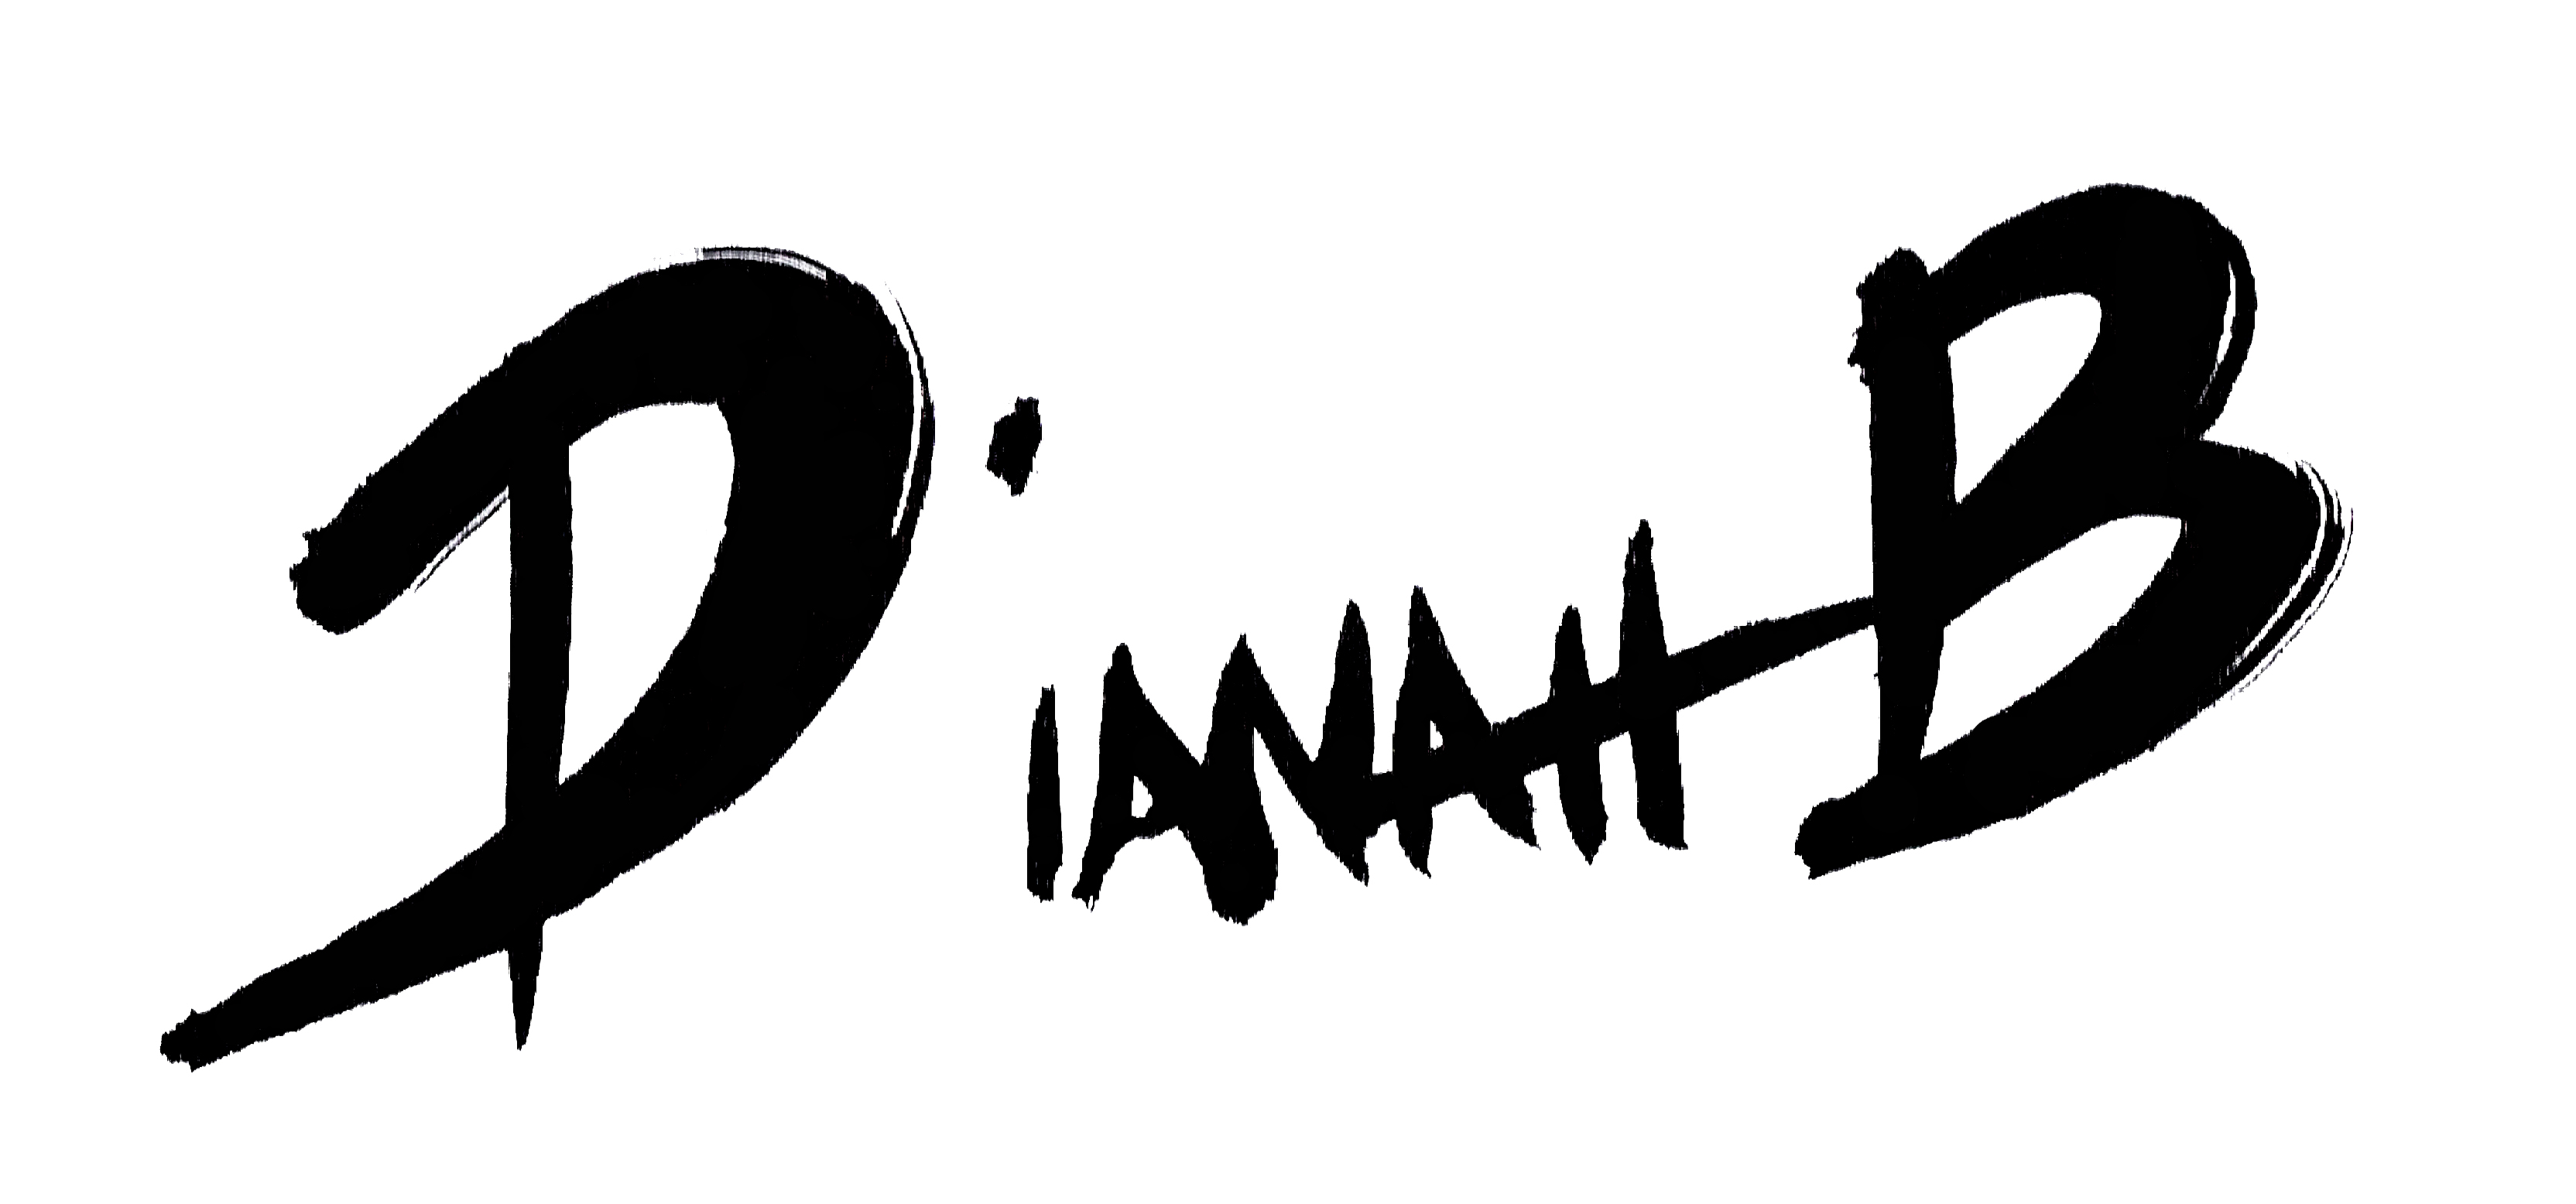 Dianah B. Arts's Signature